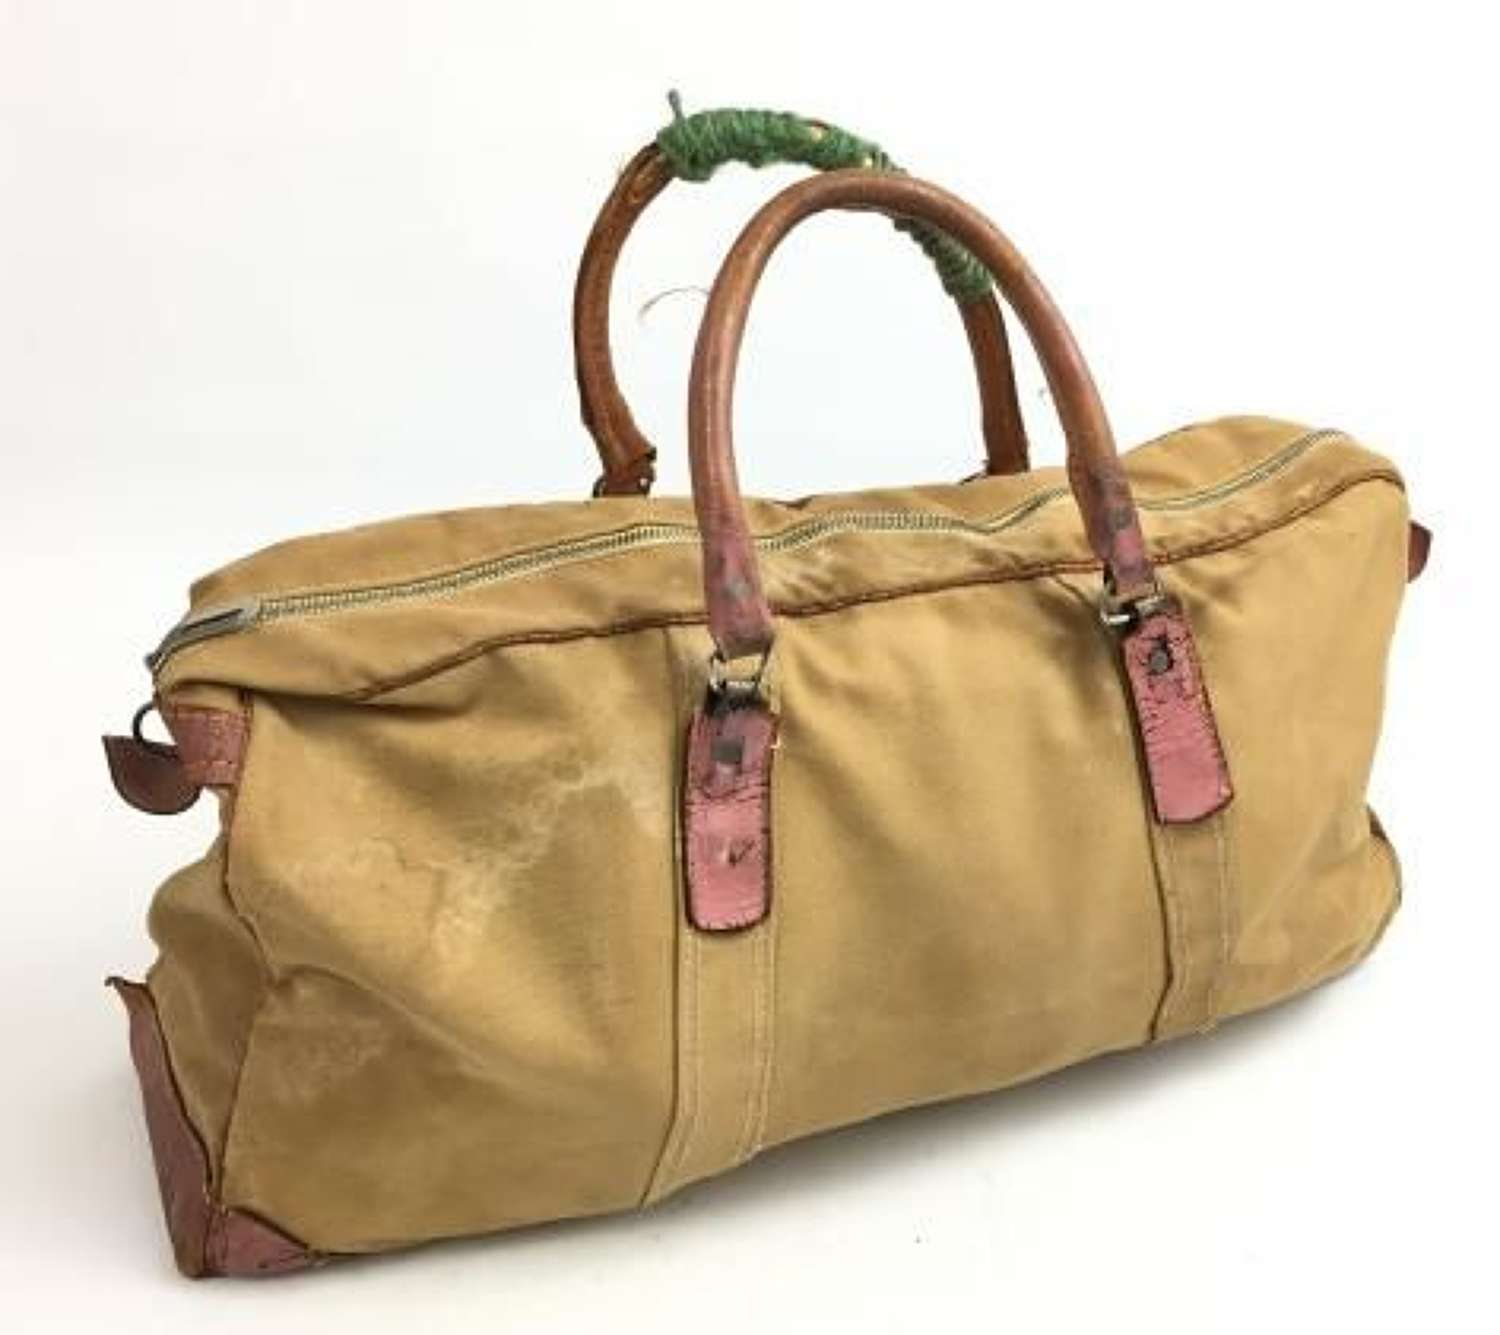 1951 Dated British Officers Canvas Holdall Grip Bag